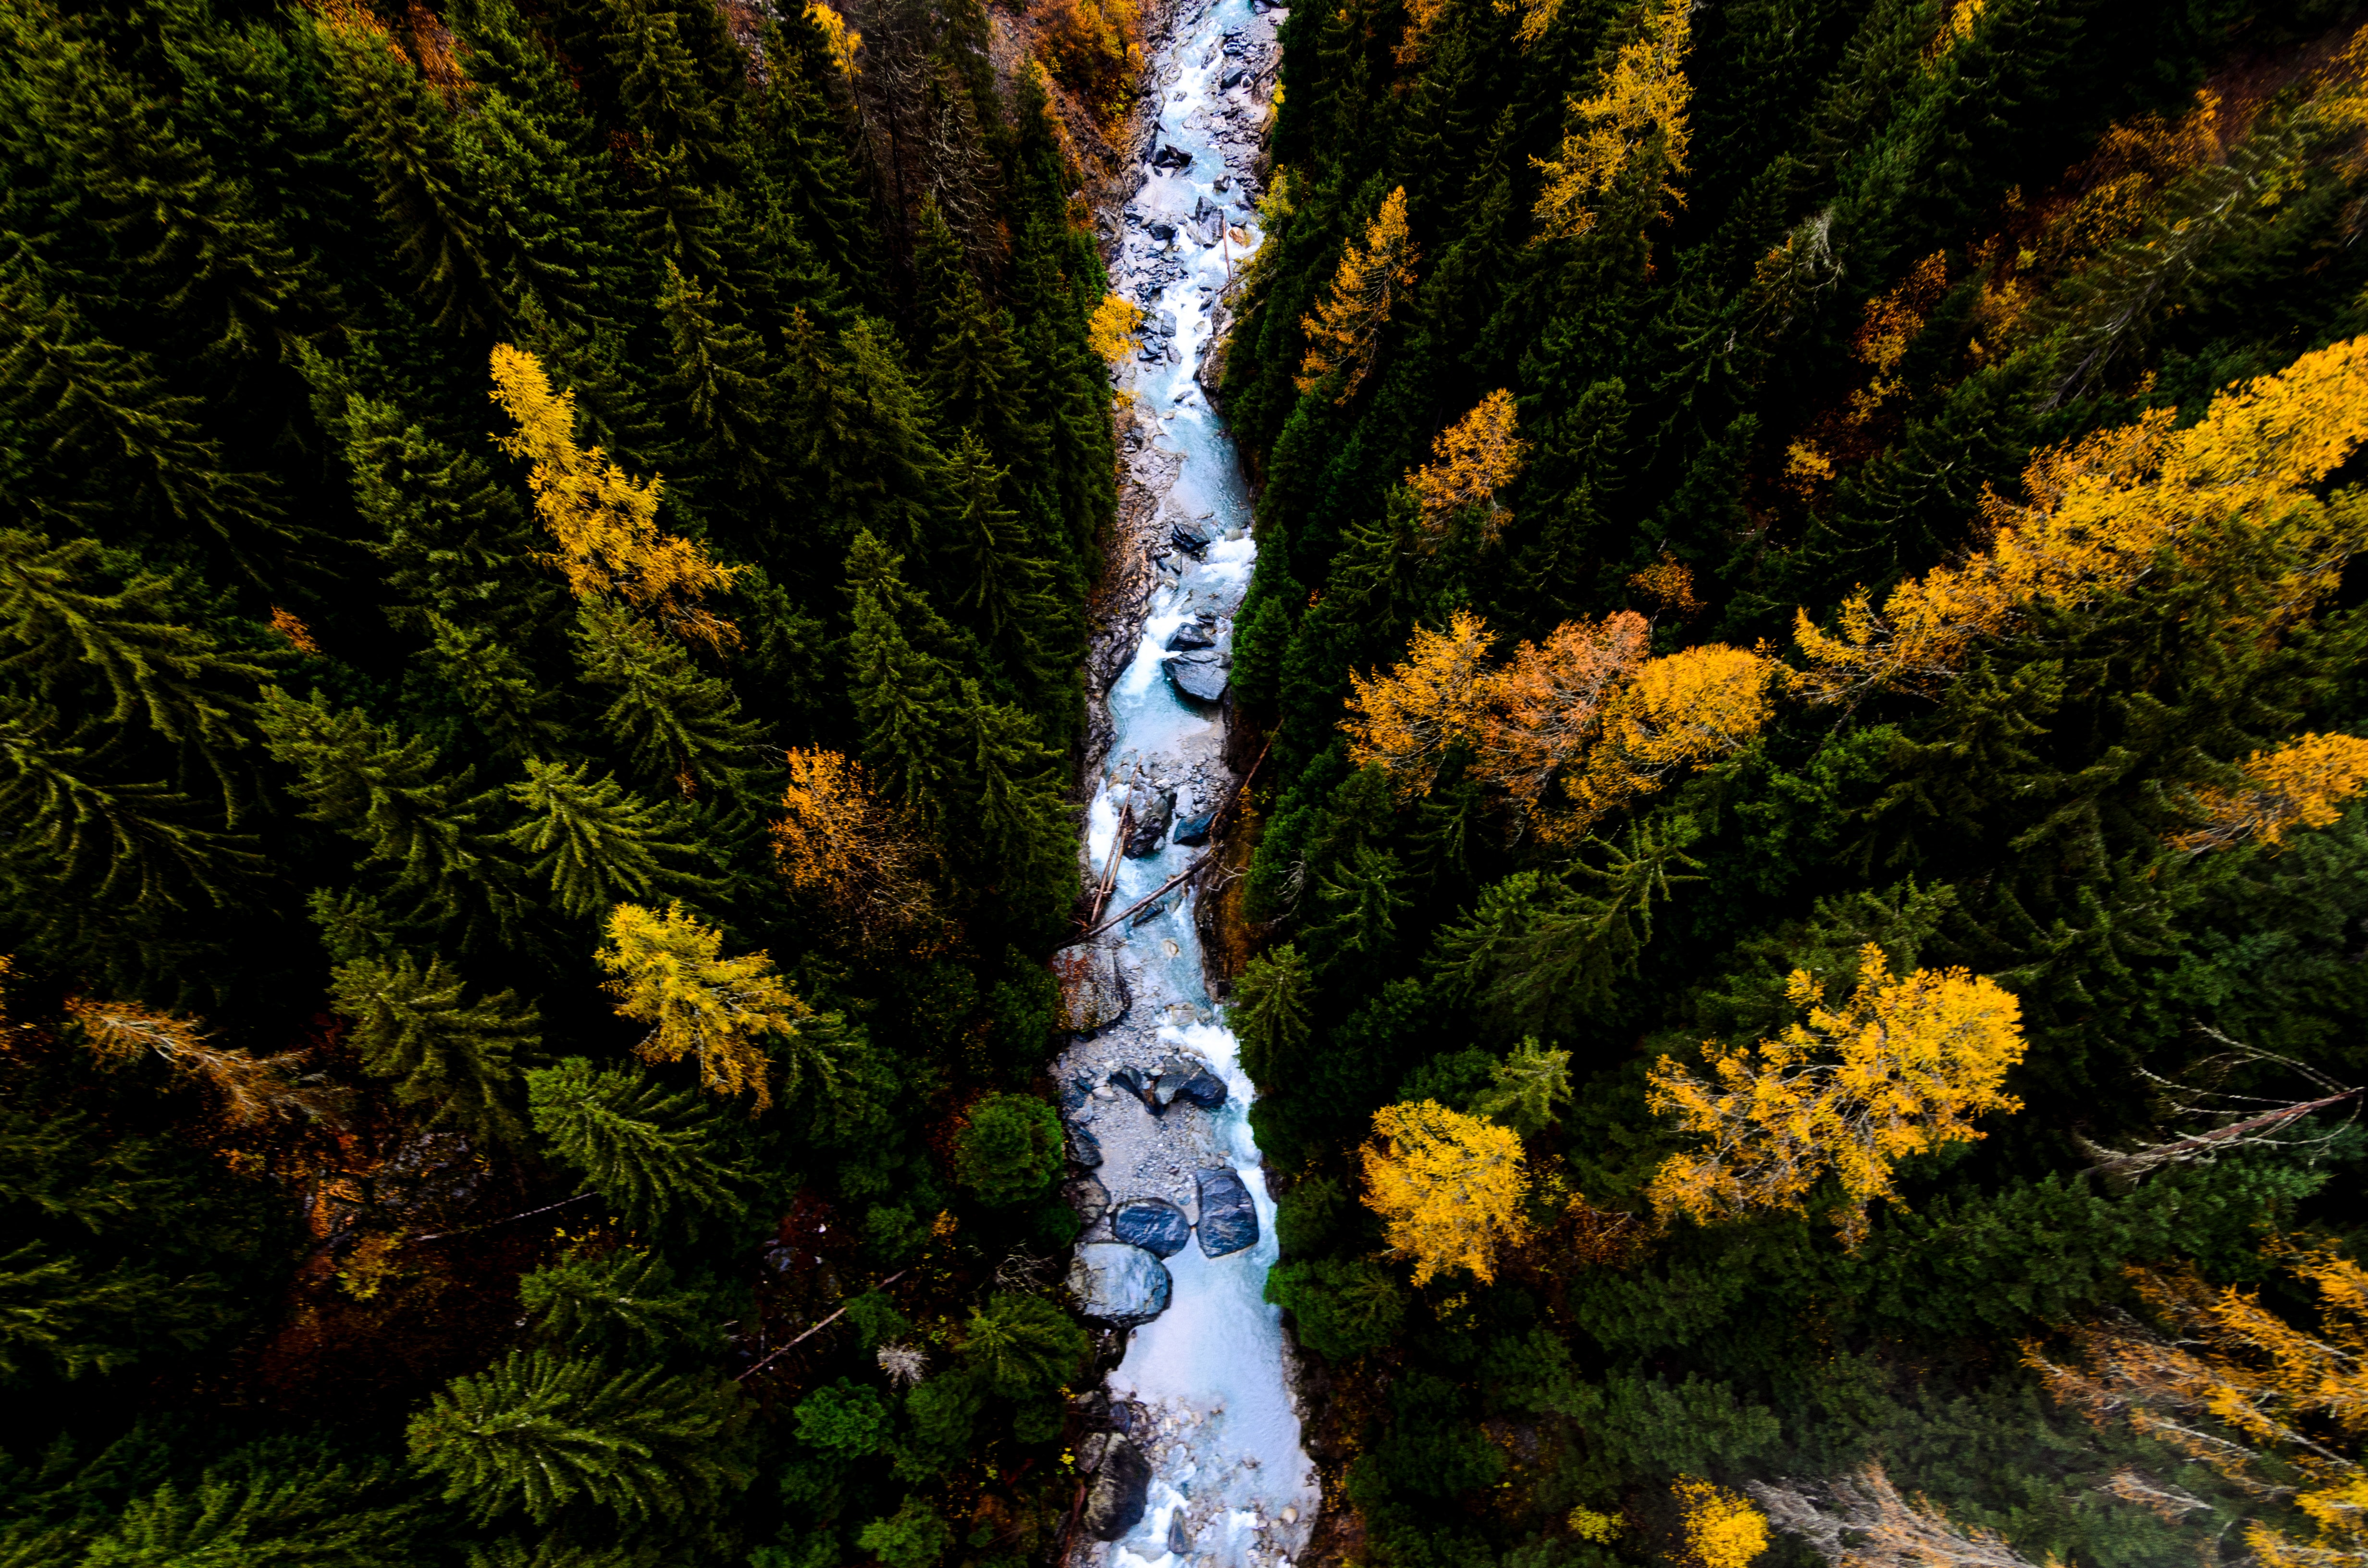 A drone view of evergreen trees and a stream in Mühlebach VS